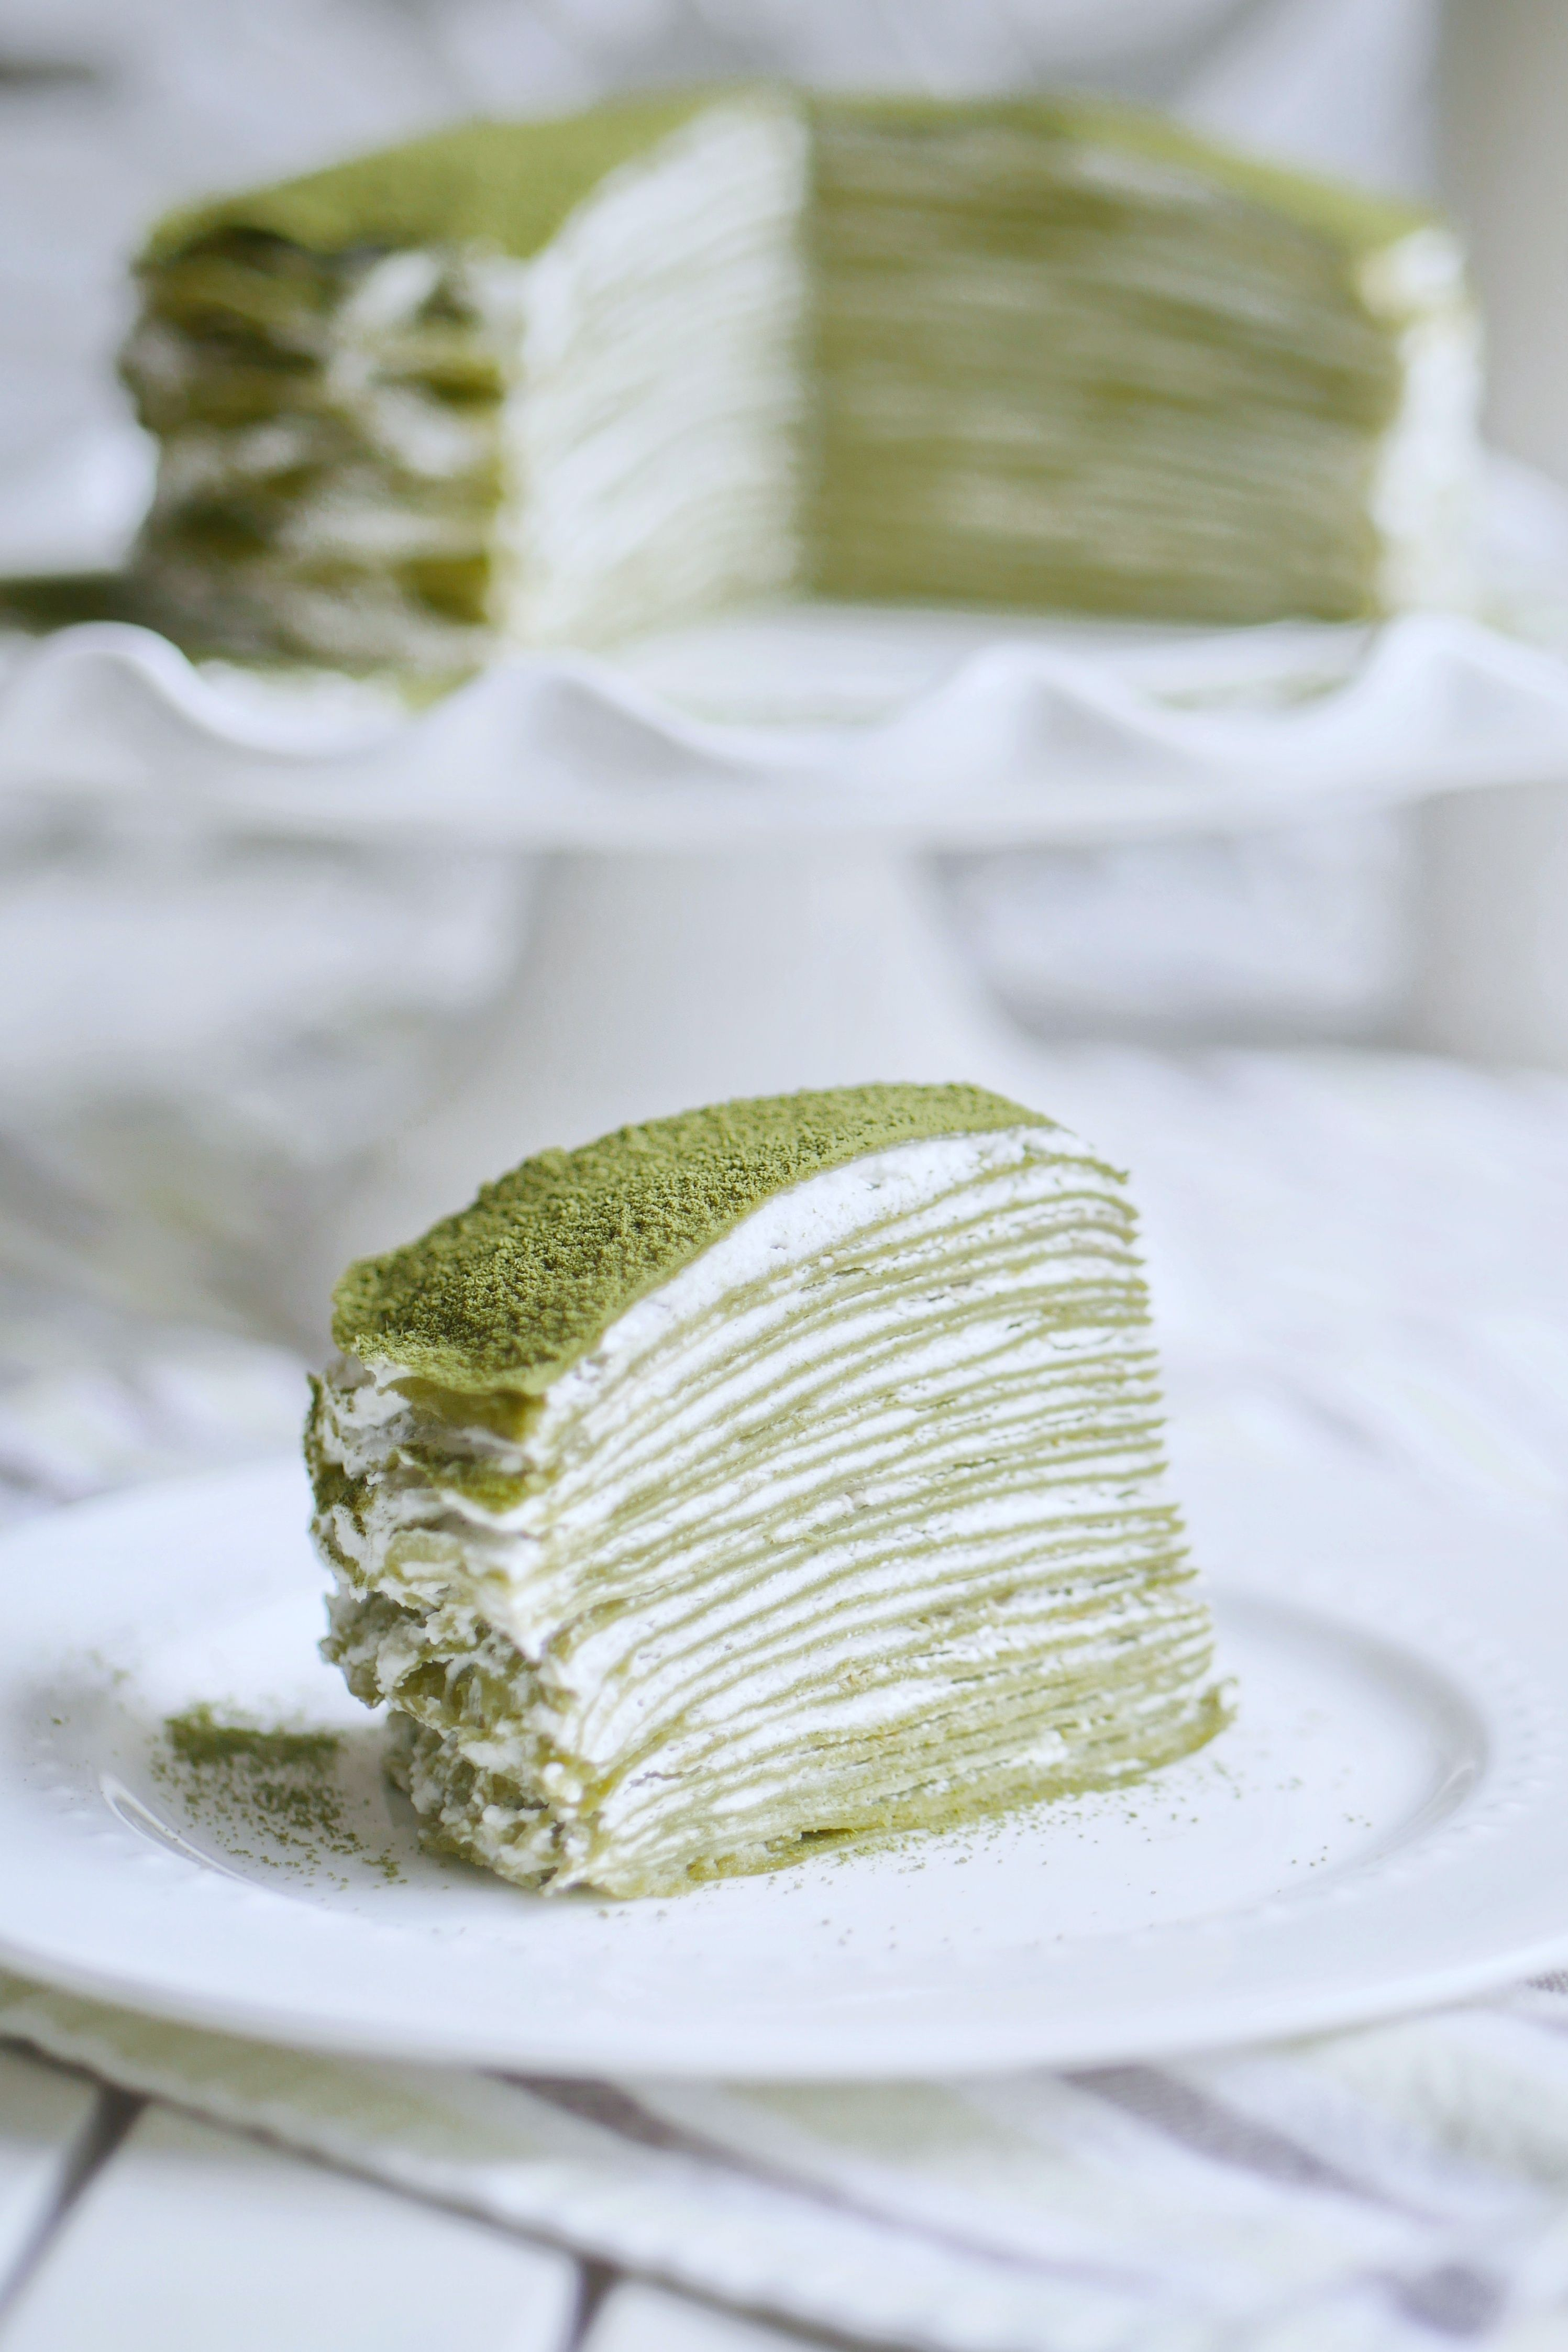 Japanese Matcha Green Tea Mille Crepe Cake A No Bake Dessert Indulge With Mimi Recipe Green Tea Crepe Cake Food Crepe Cake